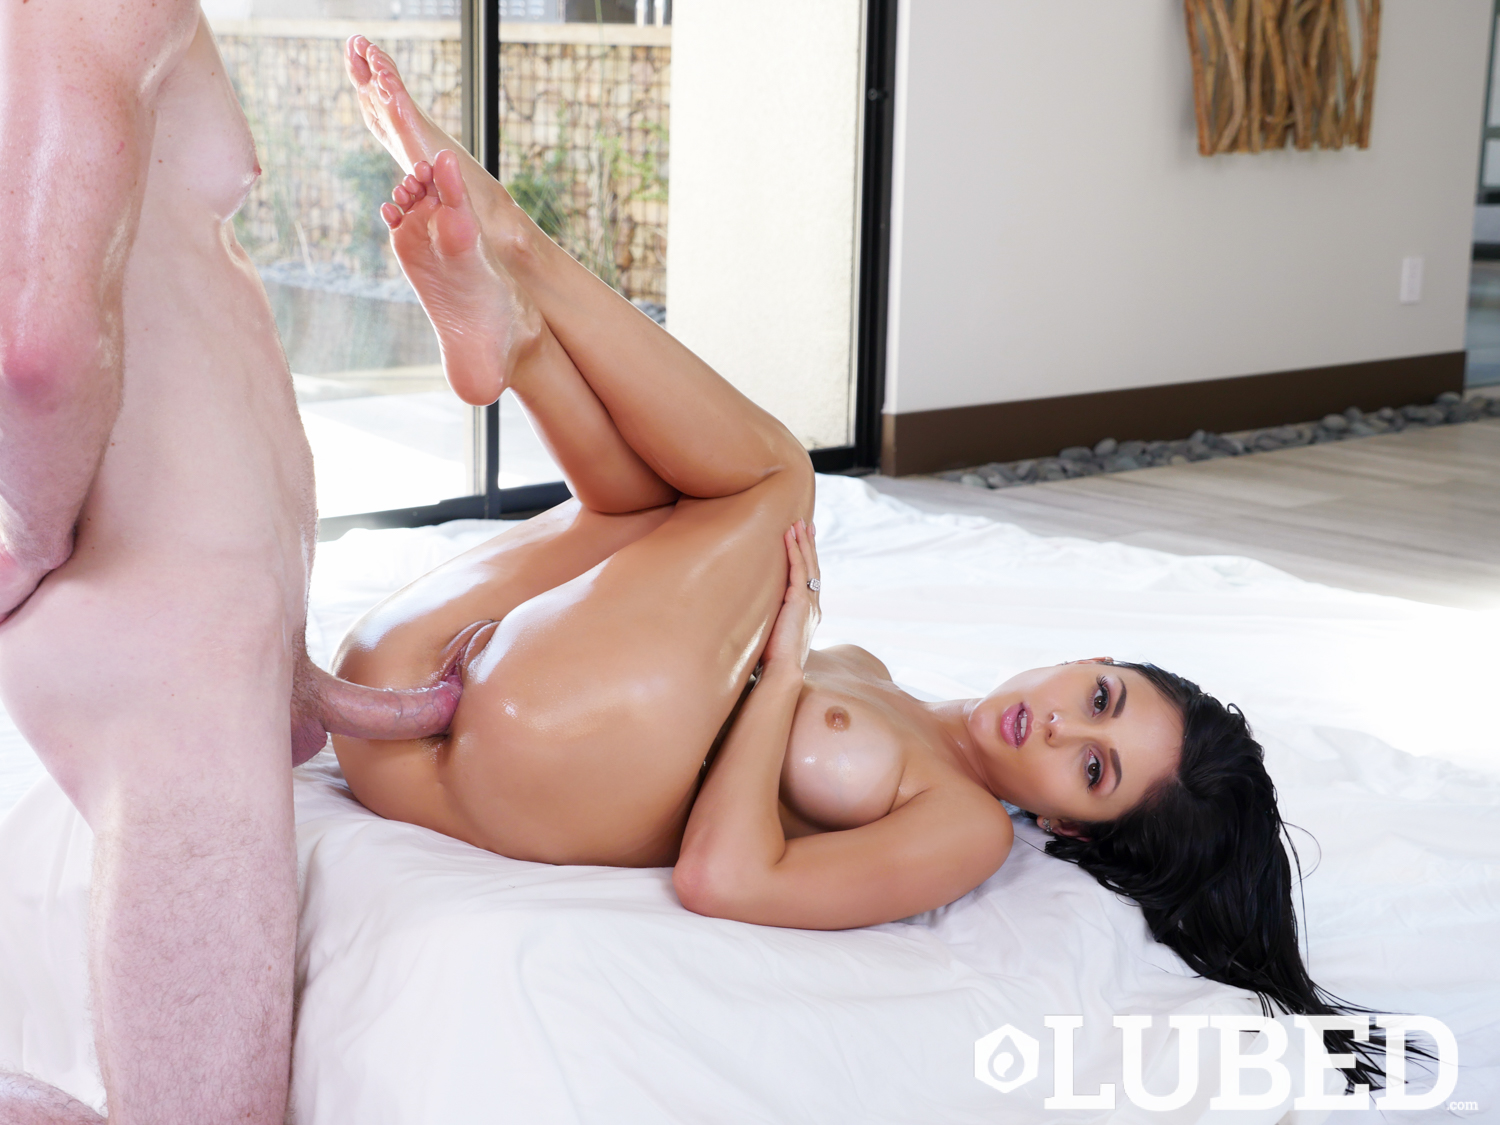 Lubed Ariana Marie Oiled Tease Lubed Porn